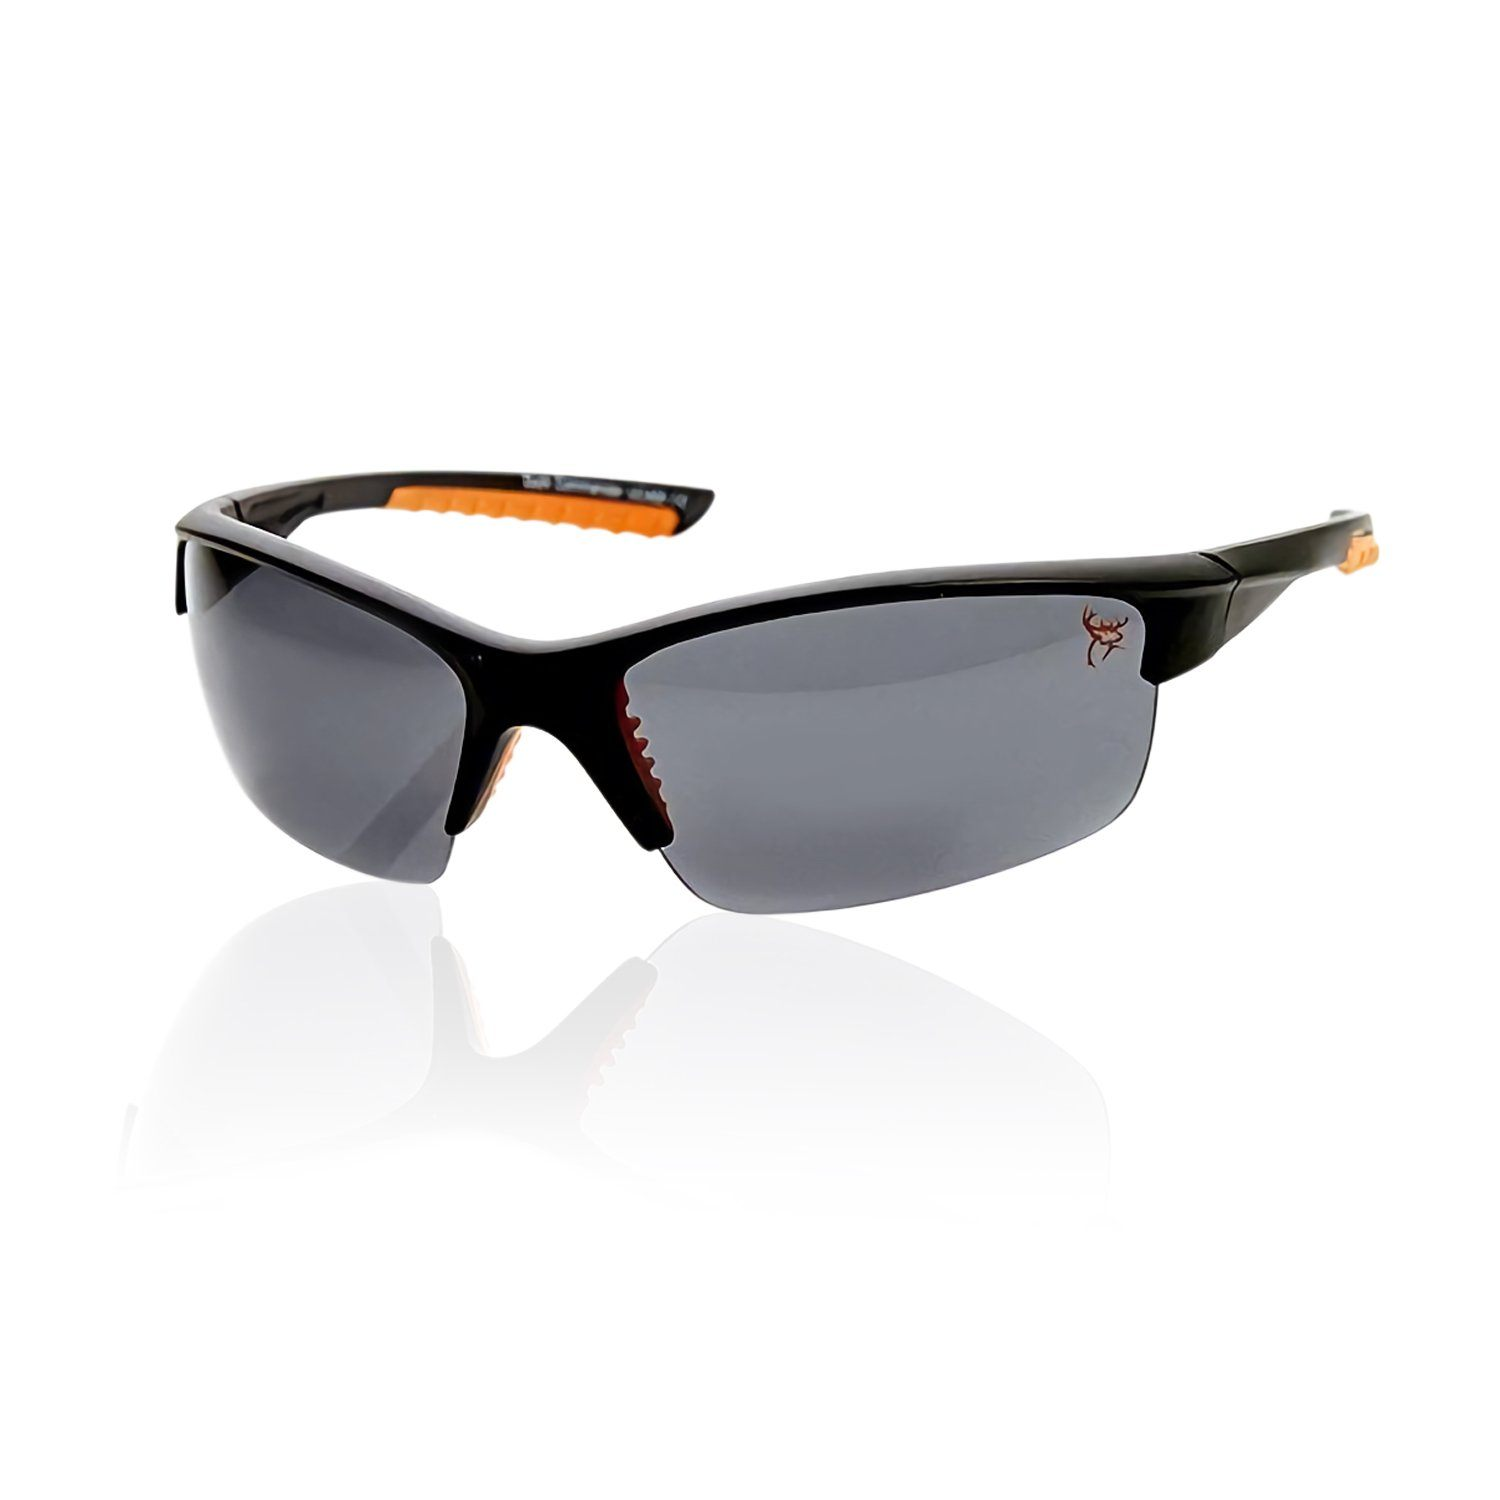 Duck/Buck Commander Orange Sunglasses - Luxor Linens